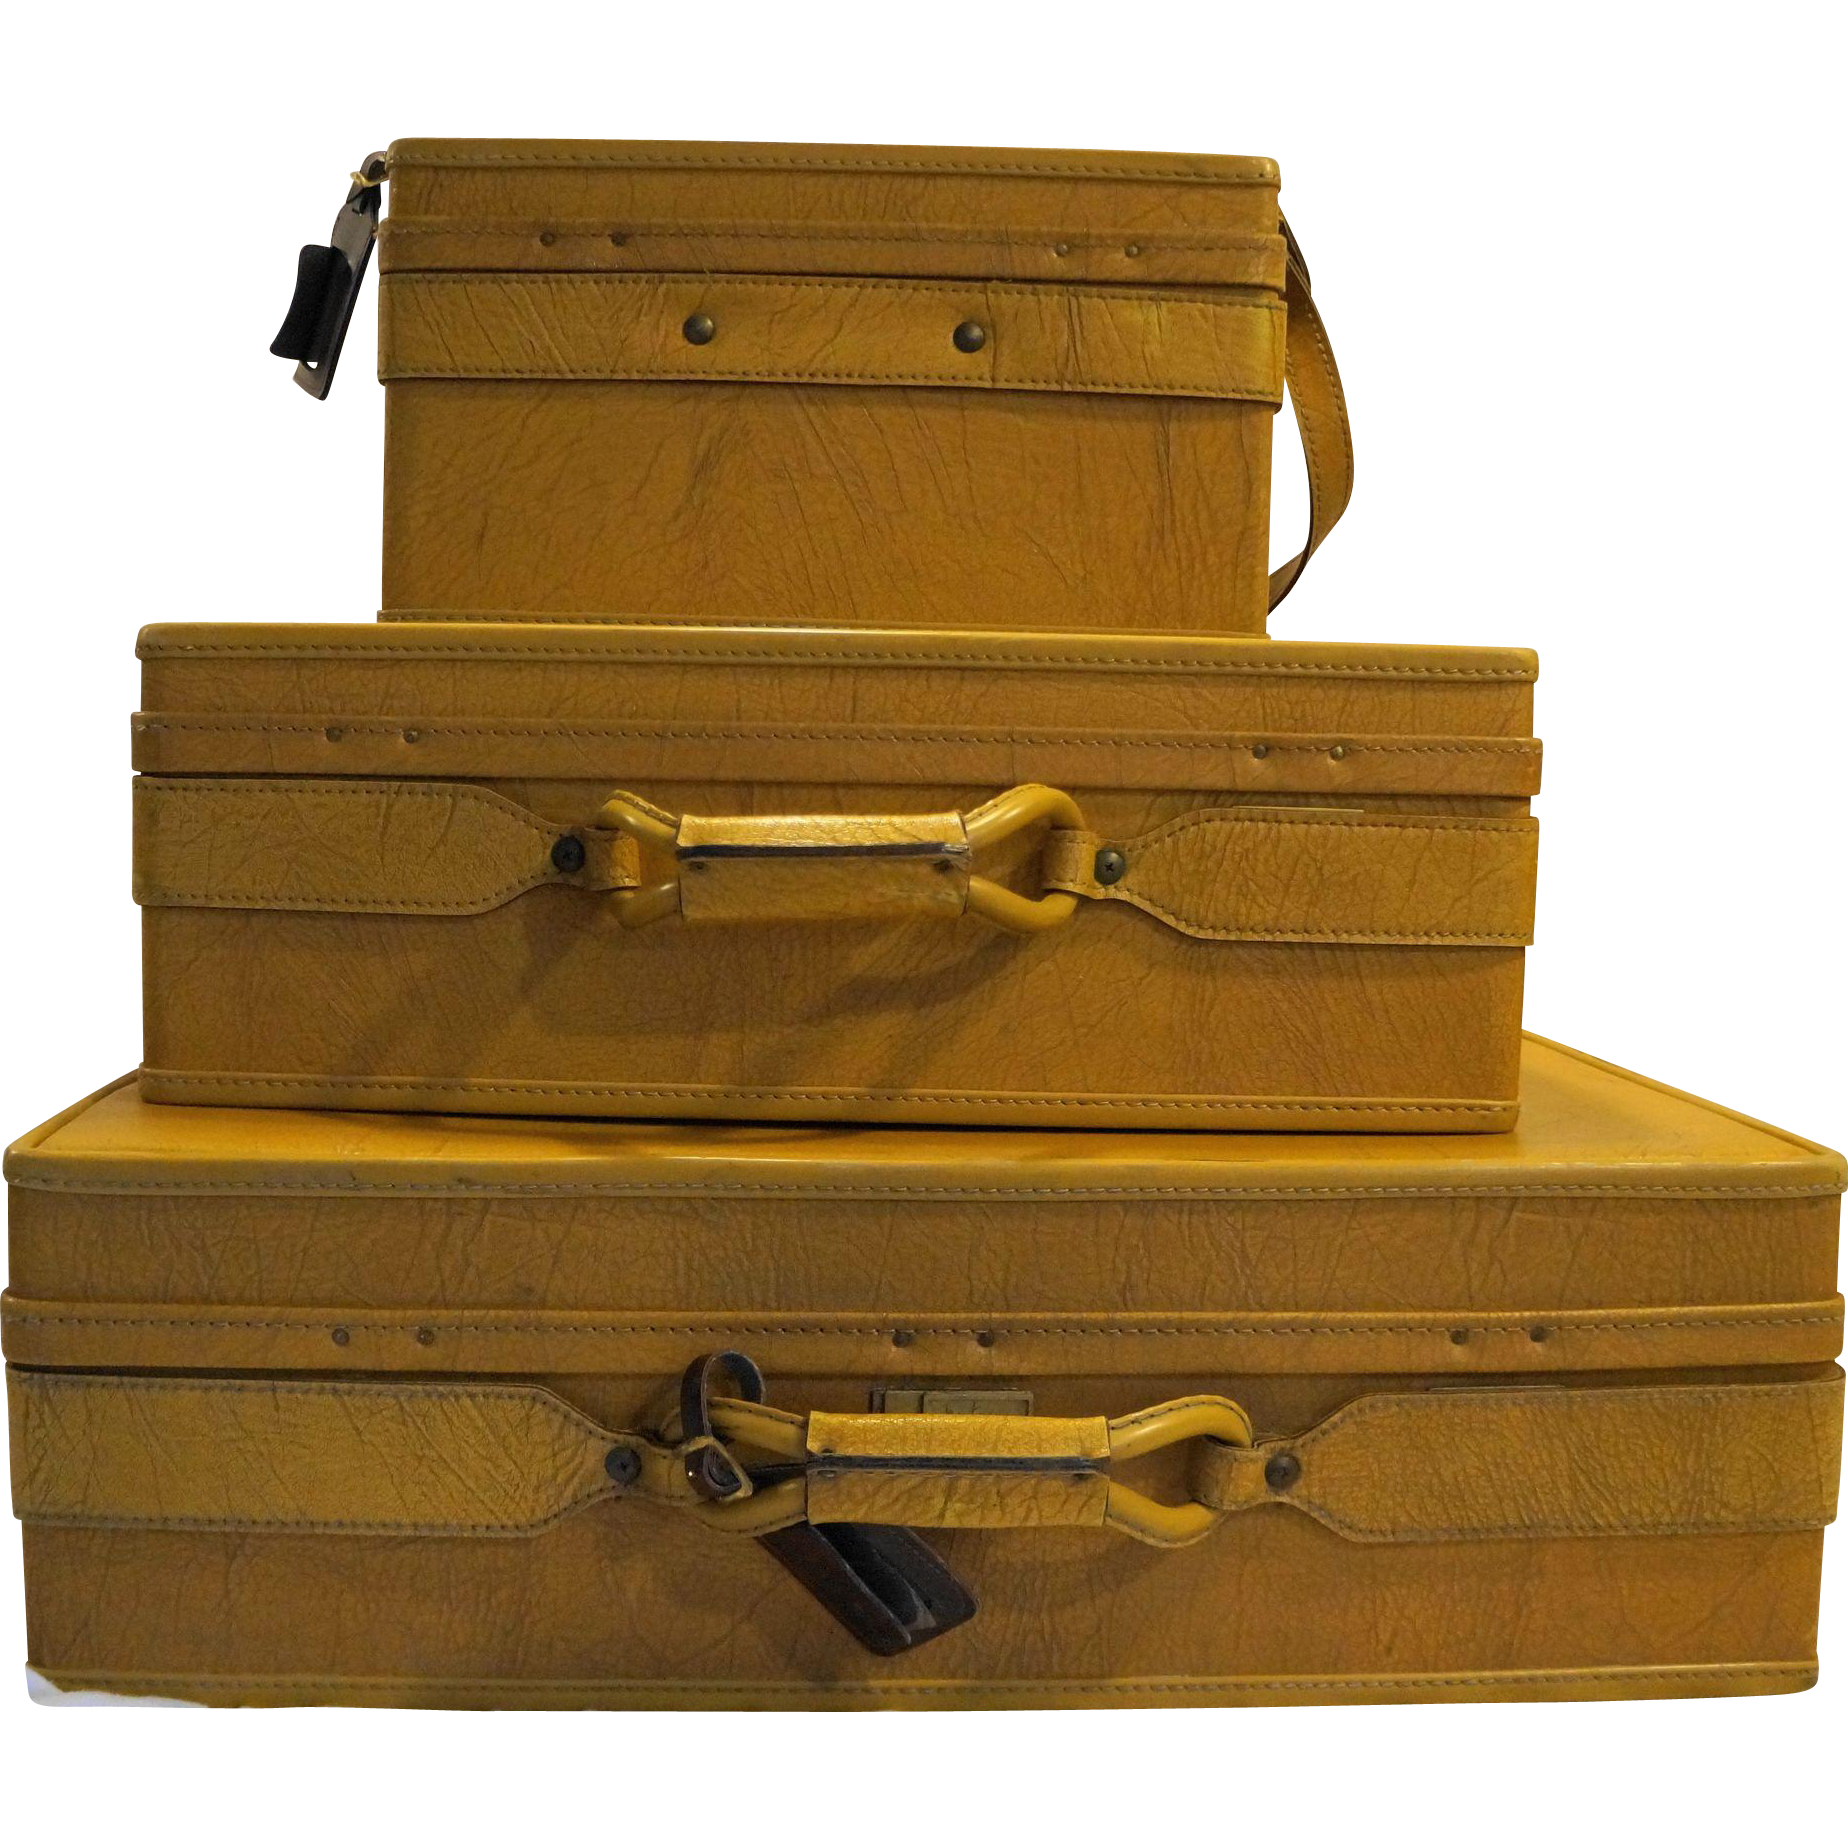 Hartmann Belting Leather Pullman Woodbox Vintage 1970s Golden Oak 3 Pieces Set Suitcases Carry On